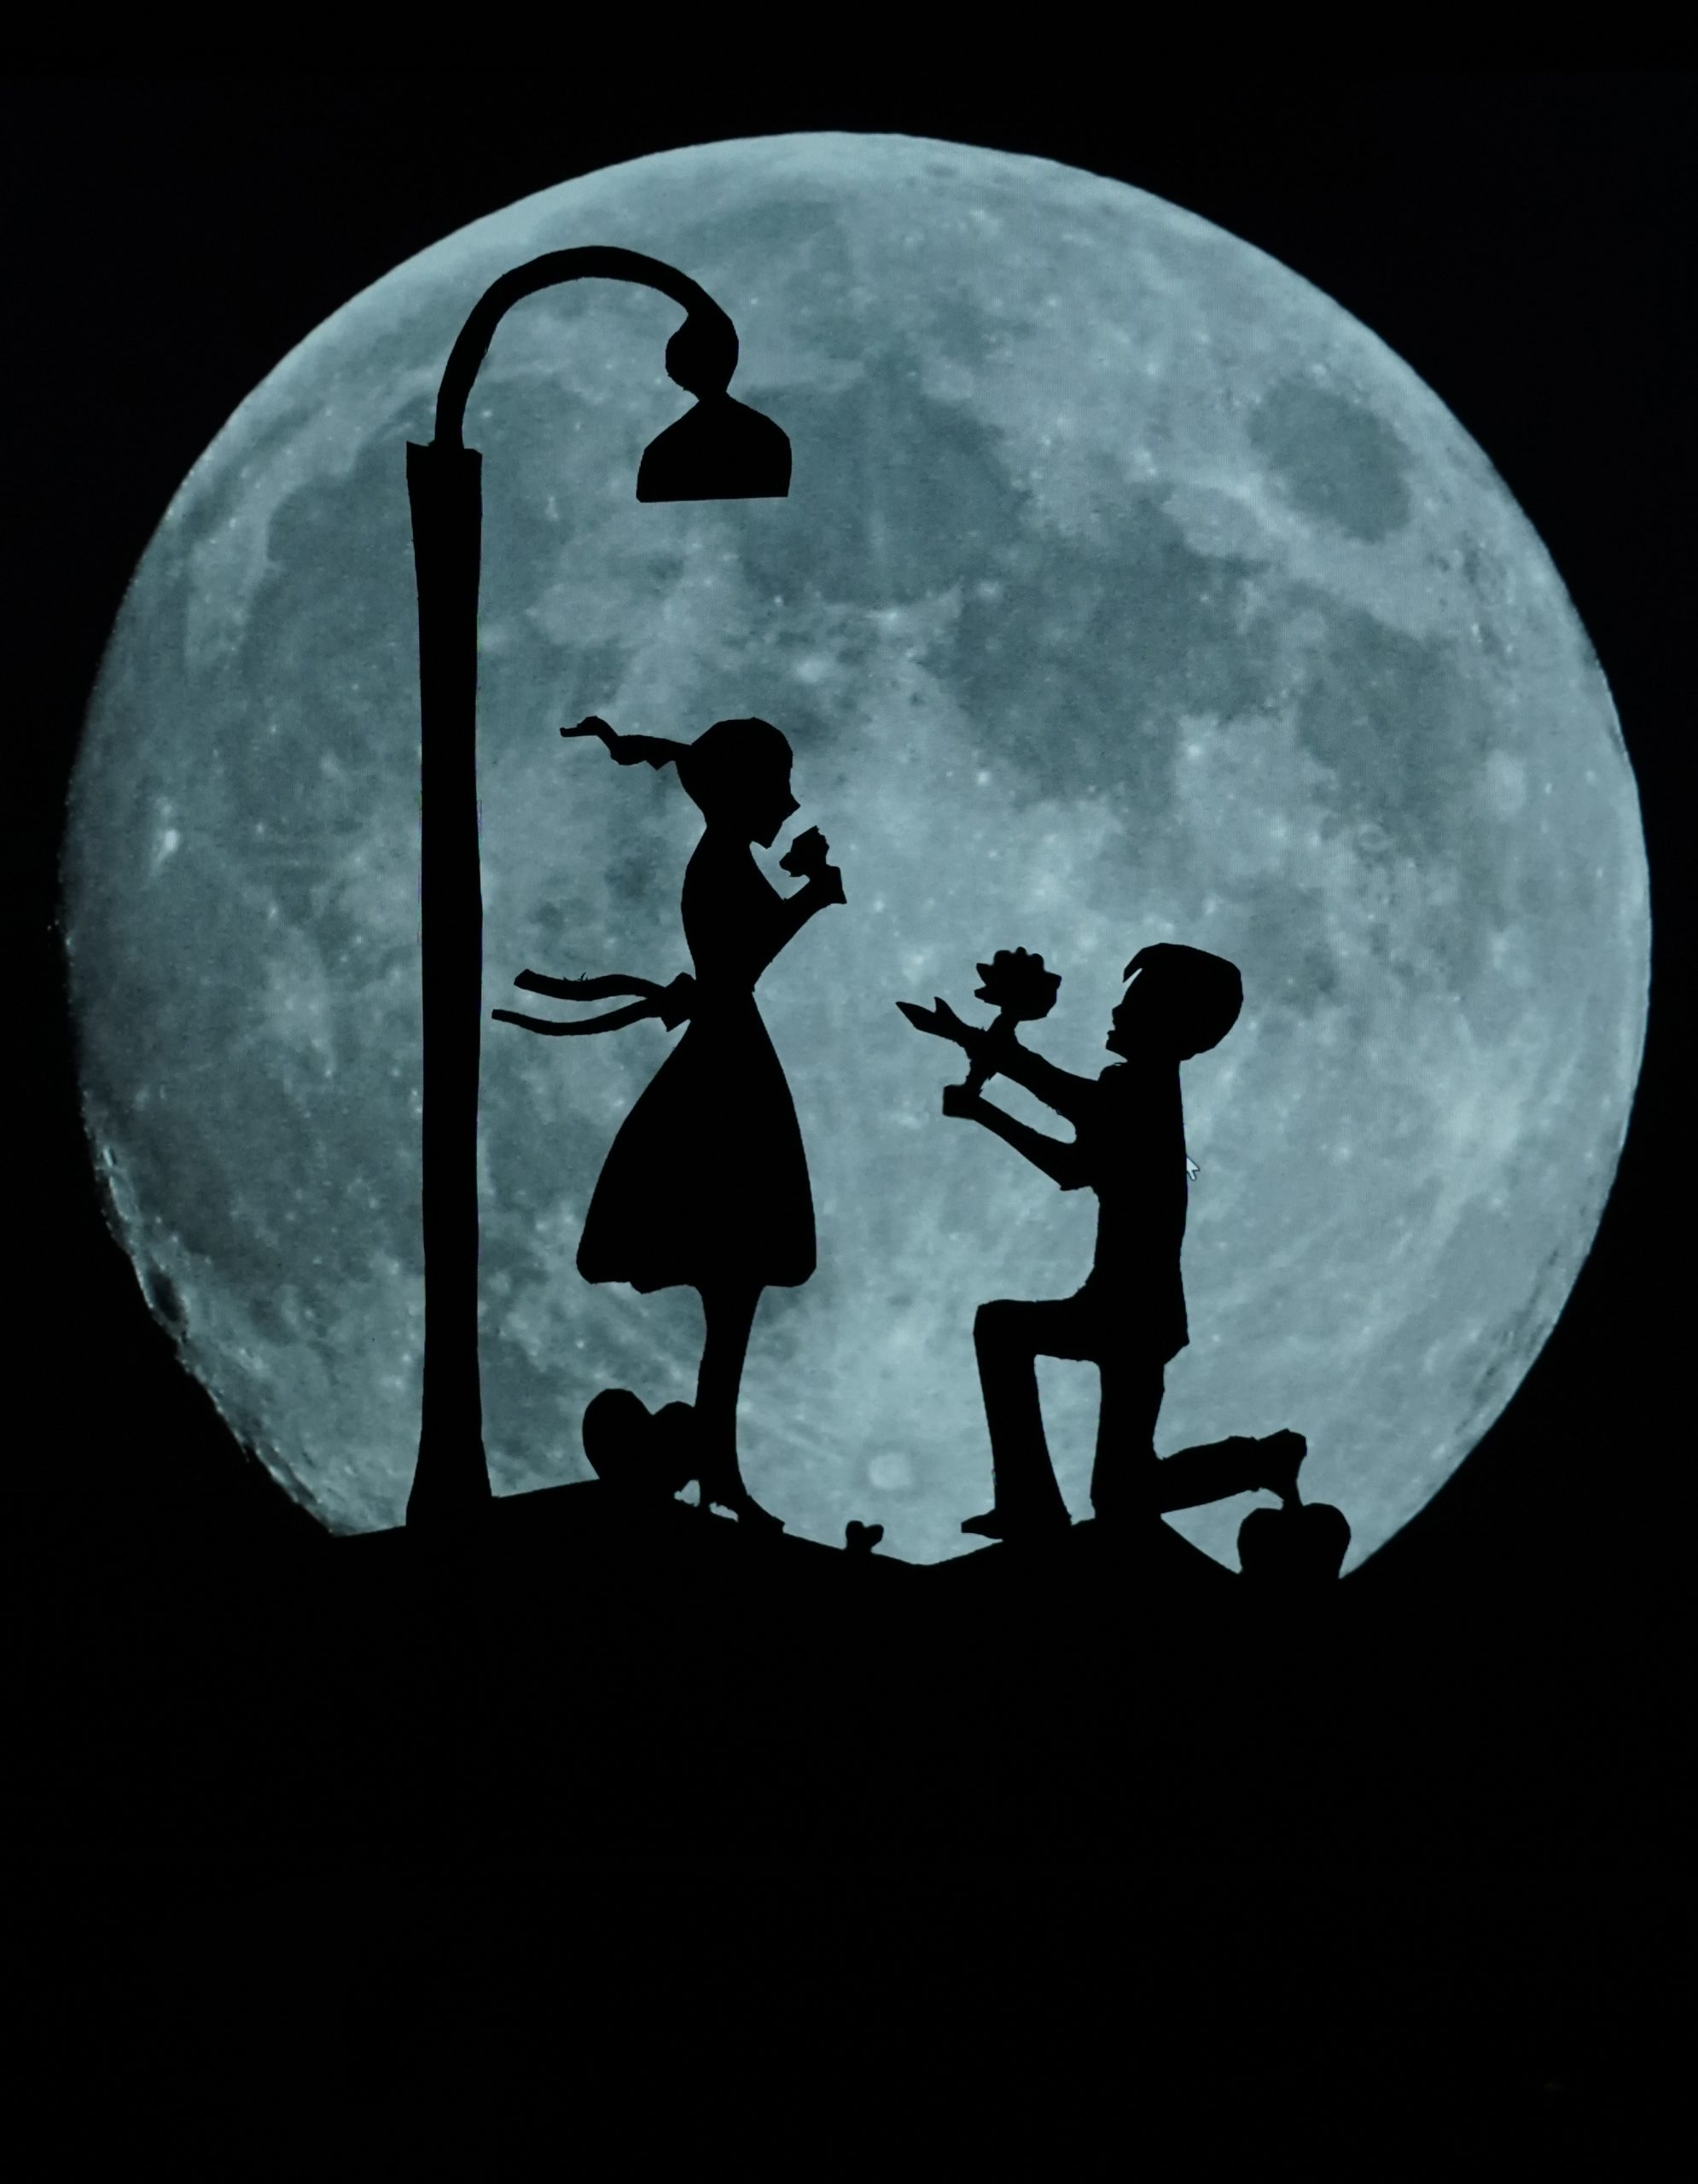 Paper art silhouette of a couple